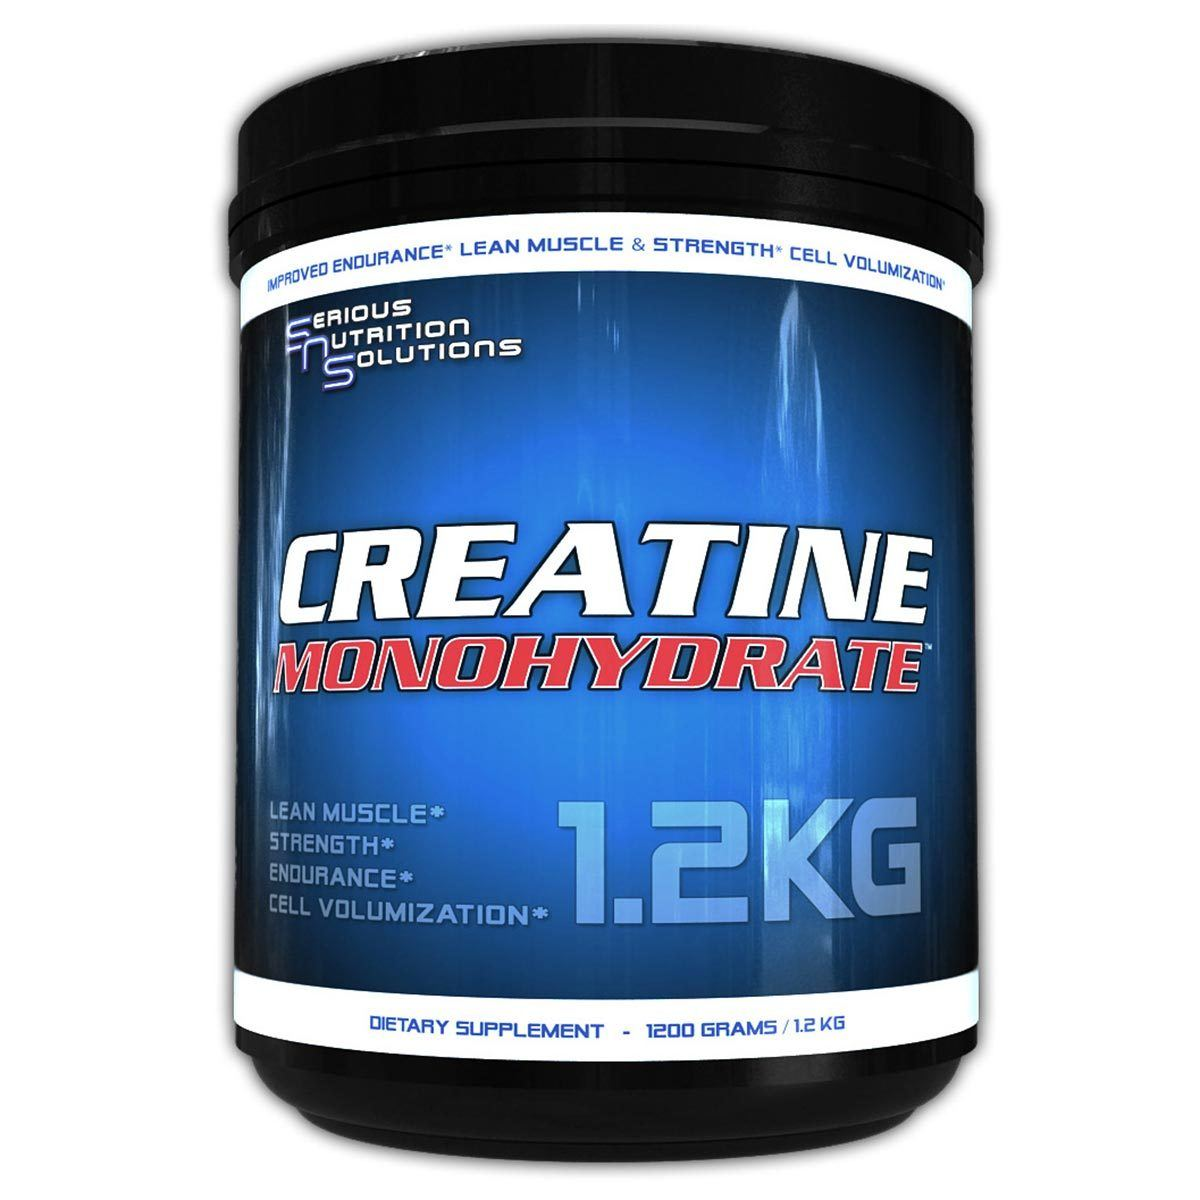 Serious Nutrition Solutions Creatine Monohydrate 1200 Grams Creatine Serious Nutrition Solutions  (1059042394155)